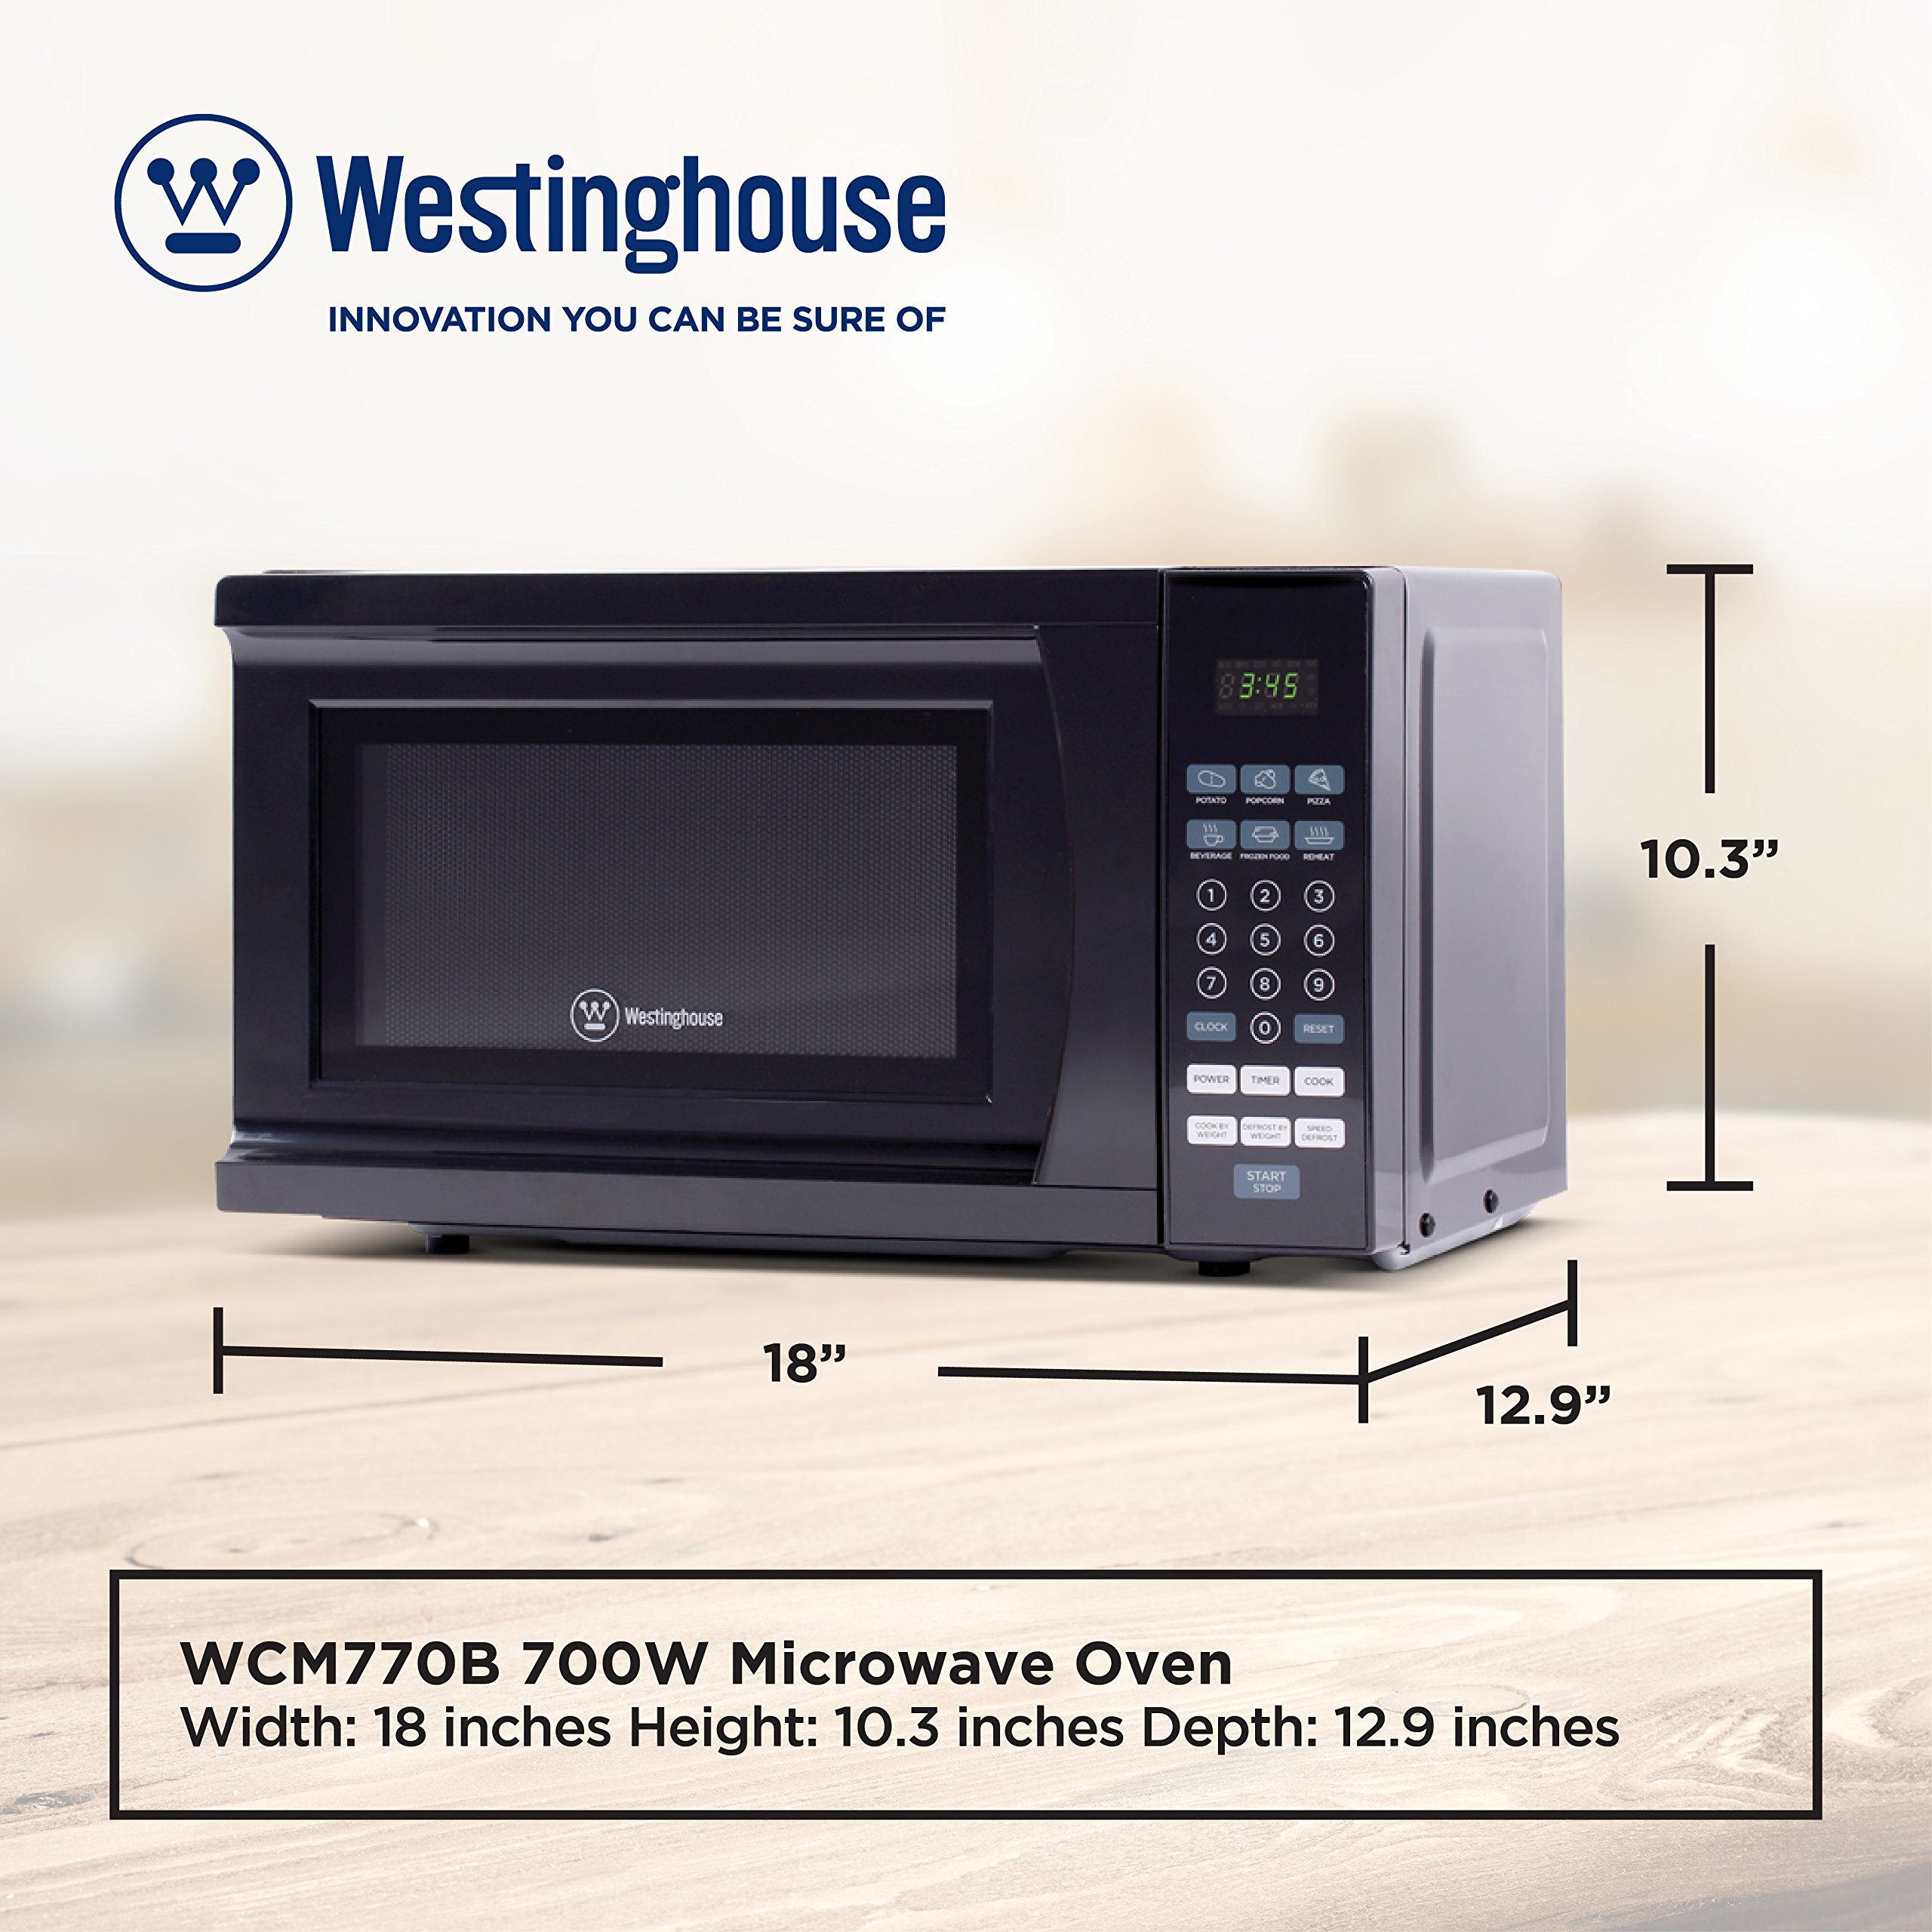 Westinghouse WCM770B 700 Watt Counter Top Microwave Oven, 0.7 Cubic Feet, Black Cabinet by Westinghouse (Image #6)